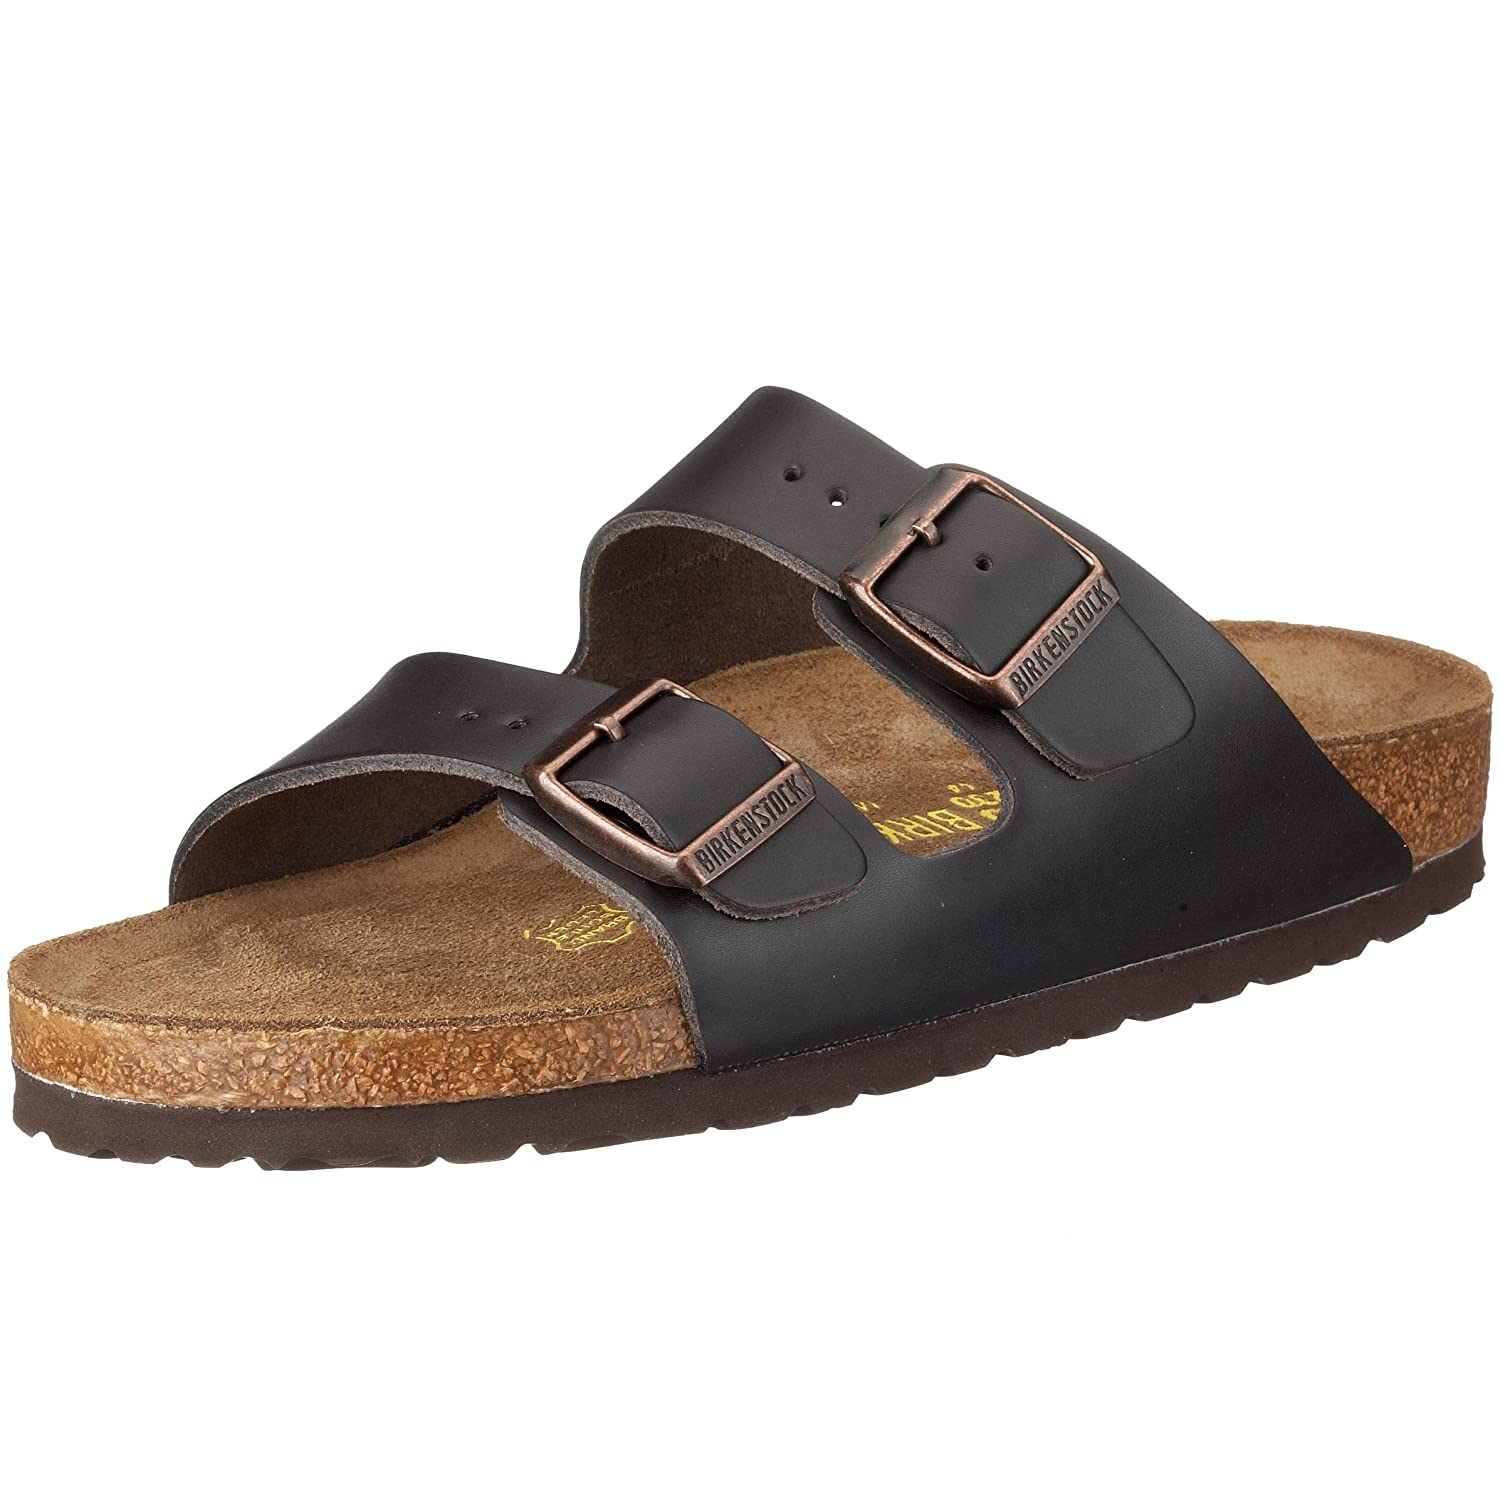 Birkenstock Arizona, Zapatos con Hebilla Unisex Adulto 43 EU (Normal)|Marrón (Brown 551)